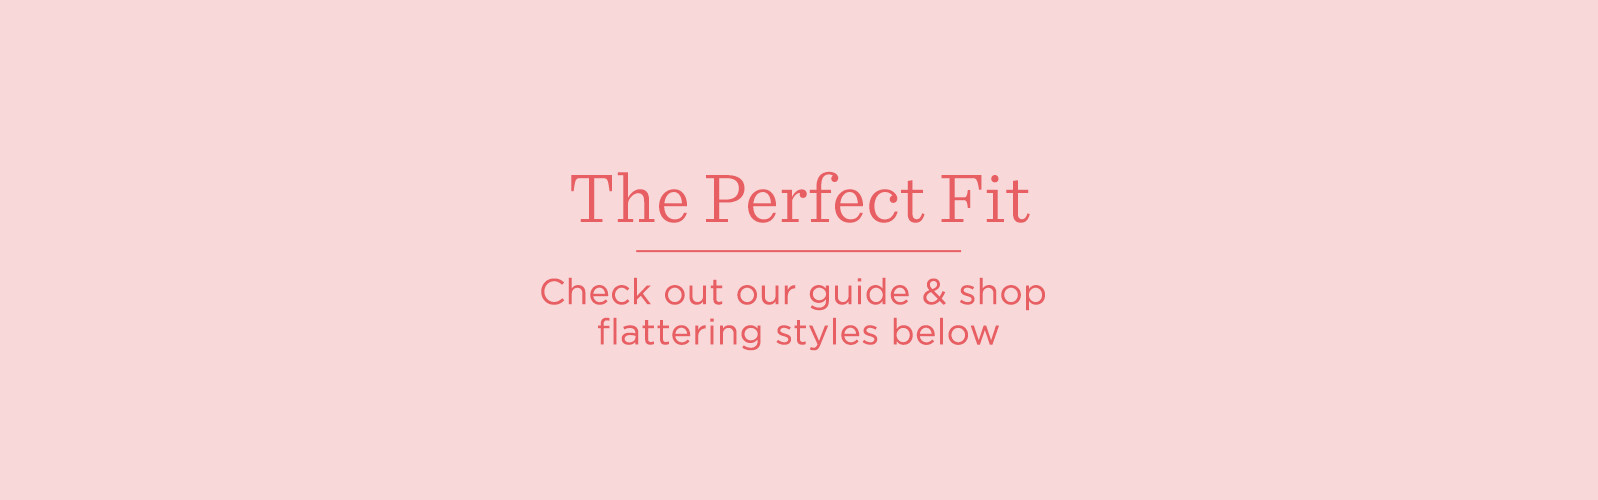 The Perfect Fit  Check out our guide & shop flattering styles below